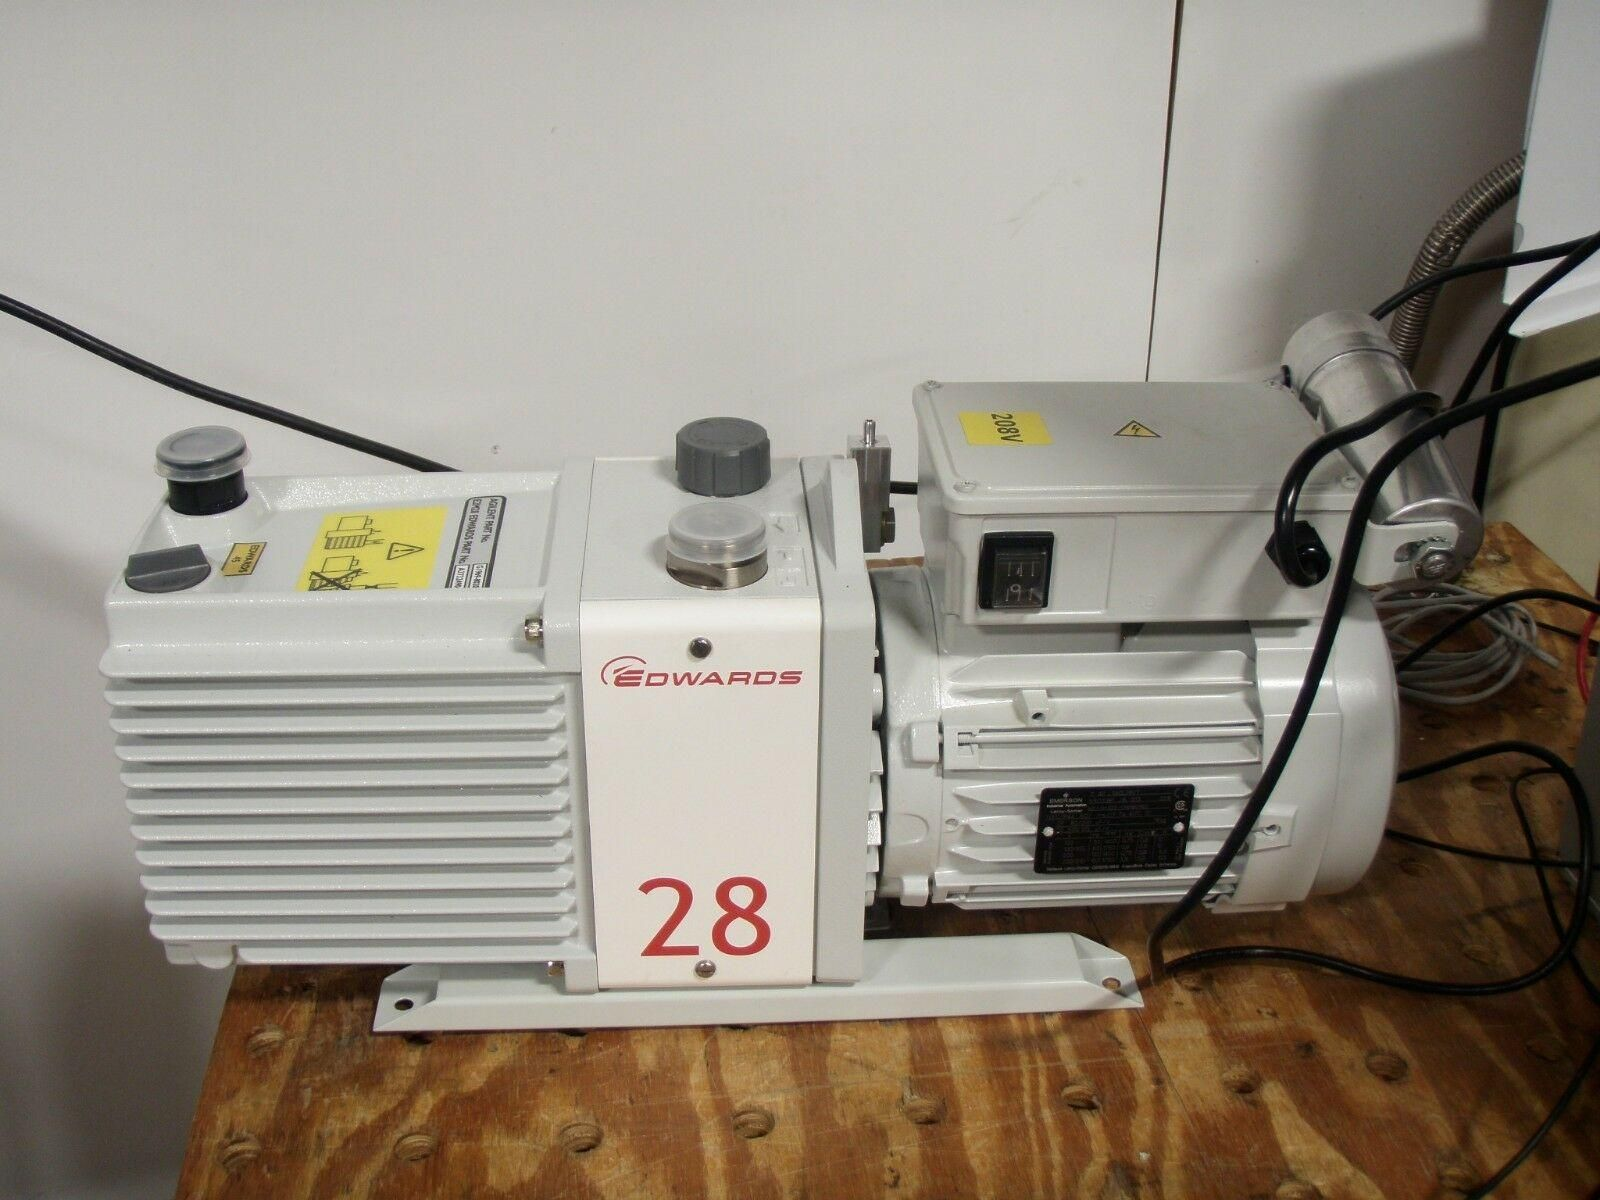 Agilent  6210 Time-of-Flight LC/MS System w/ Pump and Software